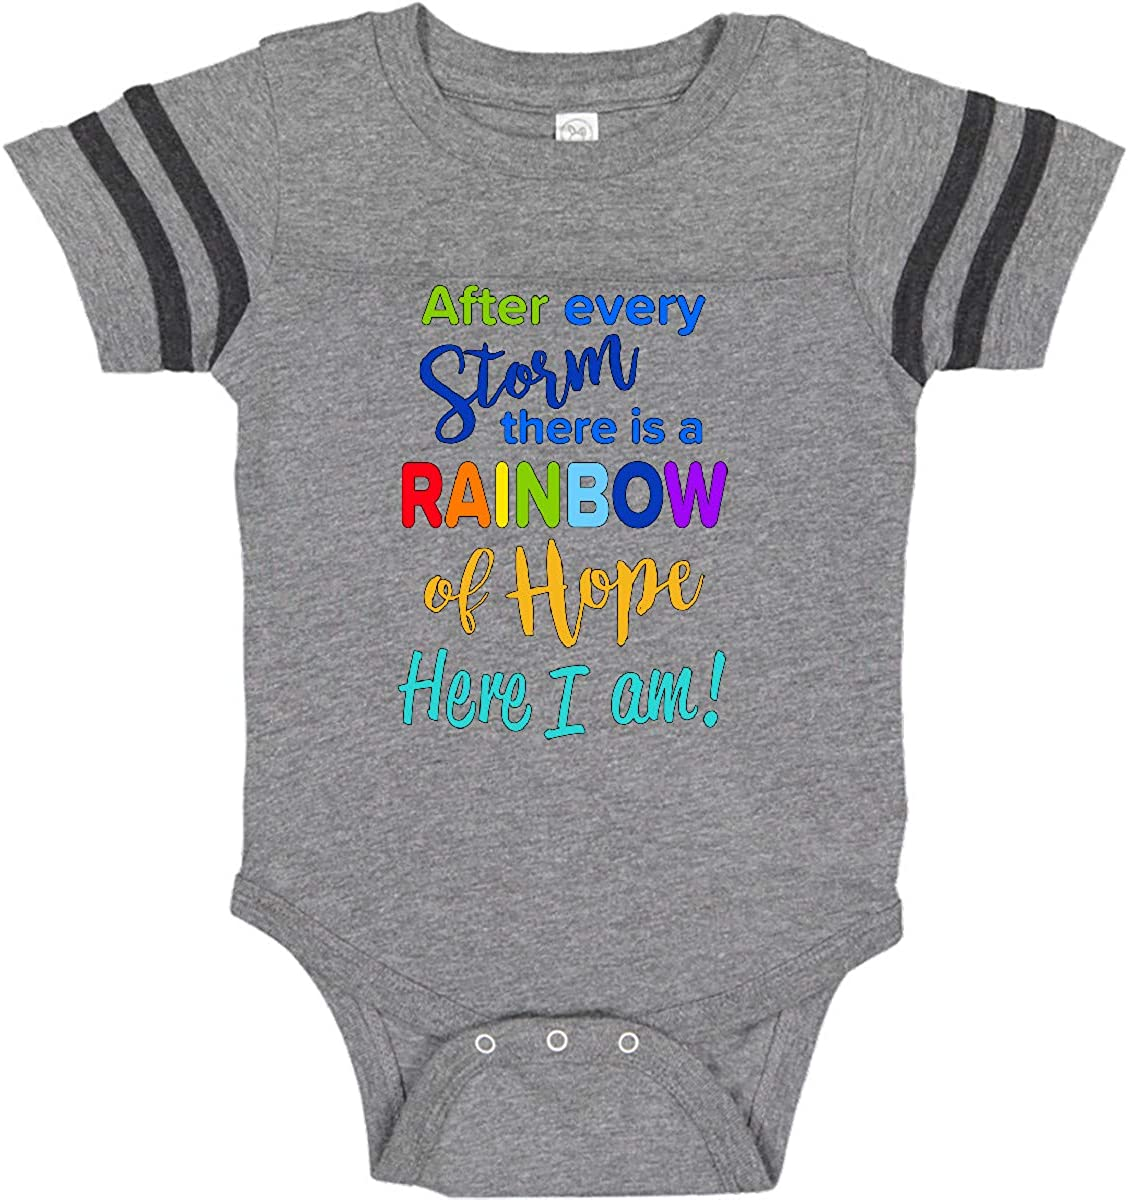 Baby Girls Boys Funny Short Sleeve Infant Baby Onesies Im The Rainbow After The Storm